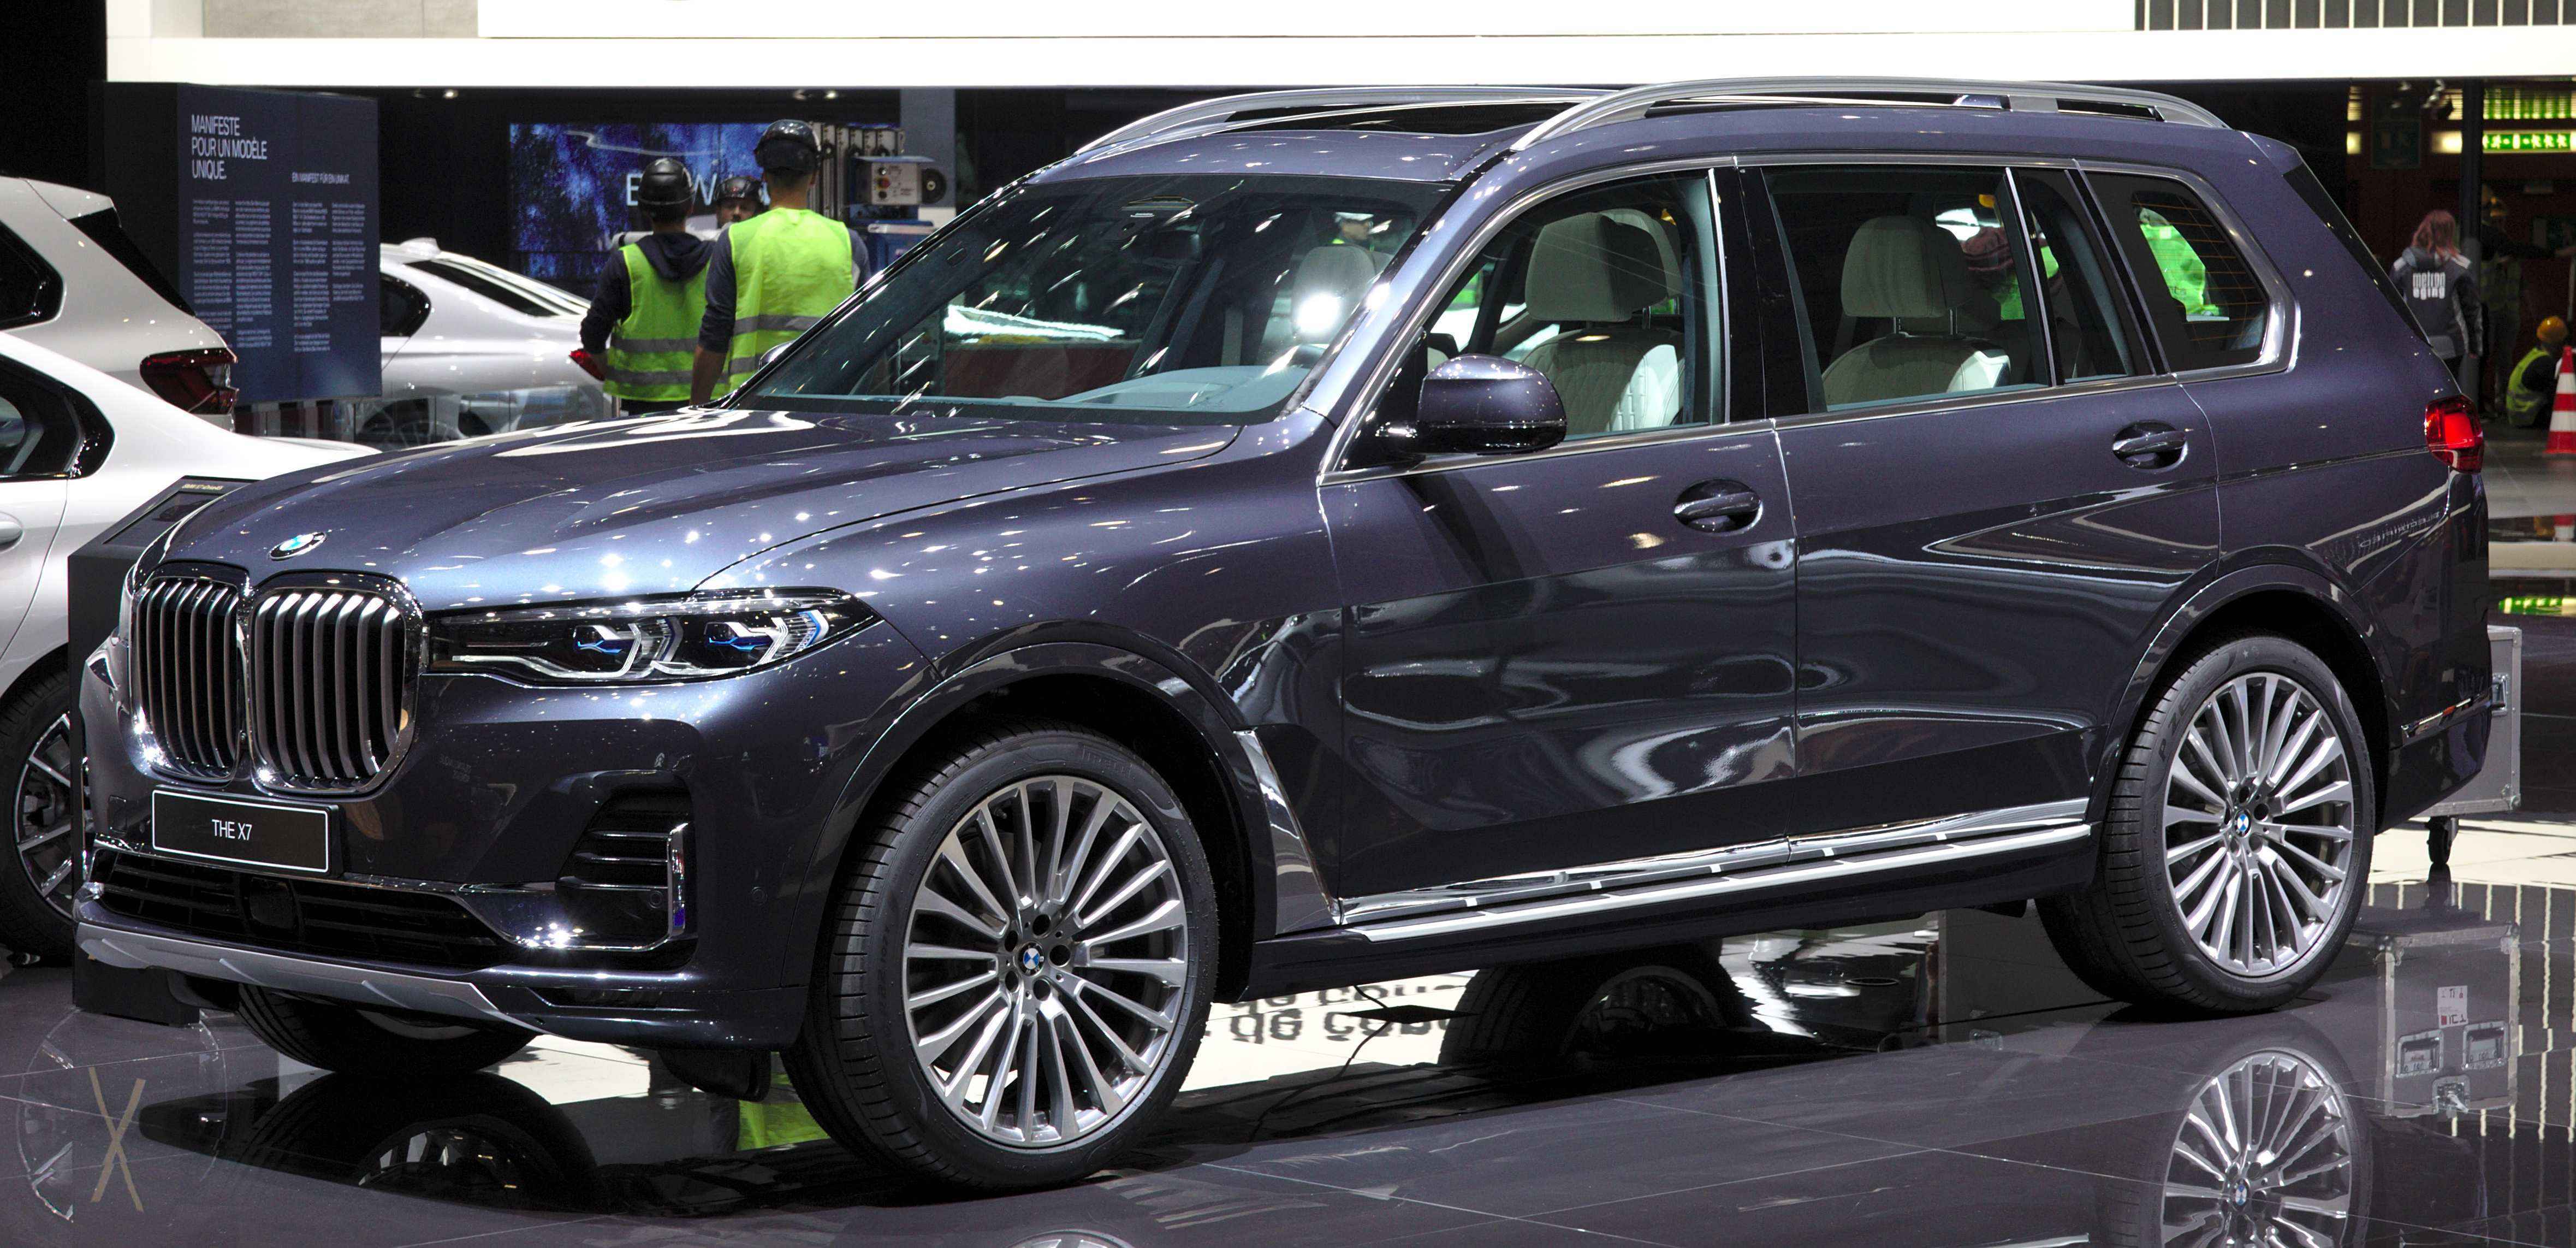 38 A 2020 BMW X7 Suv Series Configurations